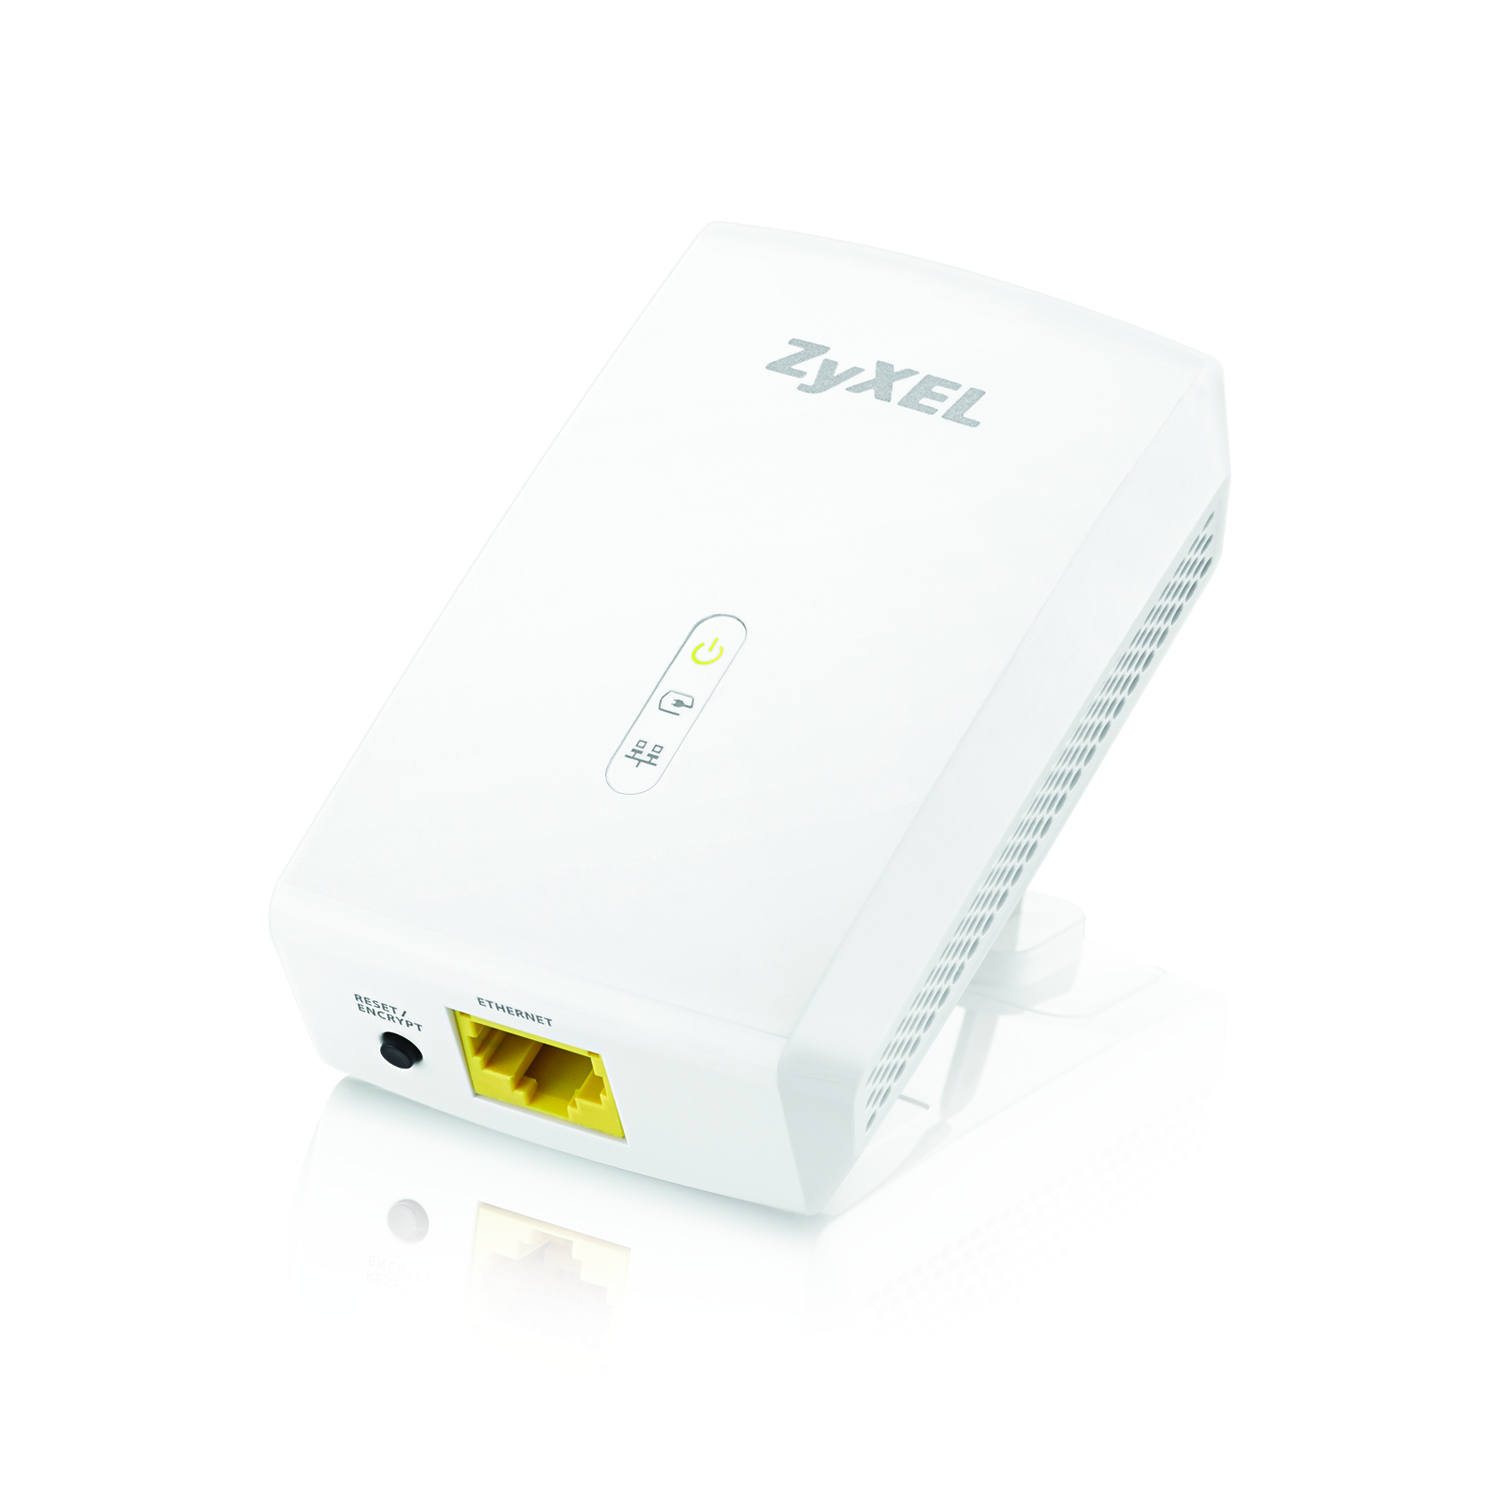 Zyxel PLA-5206 HomePlug AV2 Gigabit adaptor press image courtesy of Zyxel USA